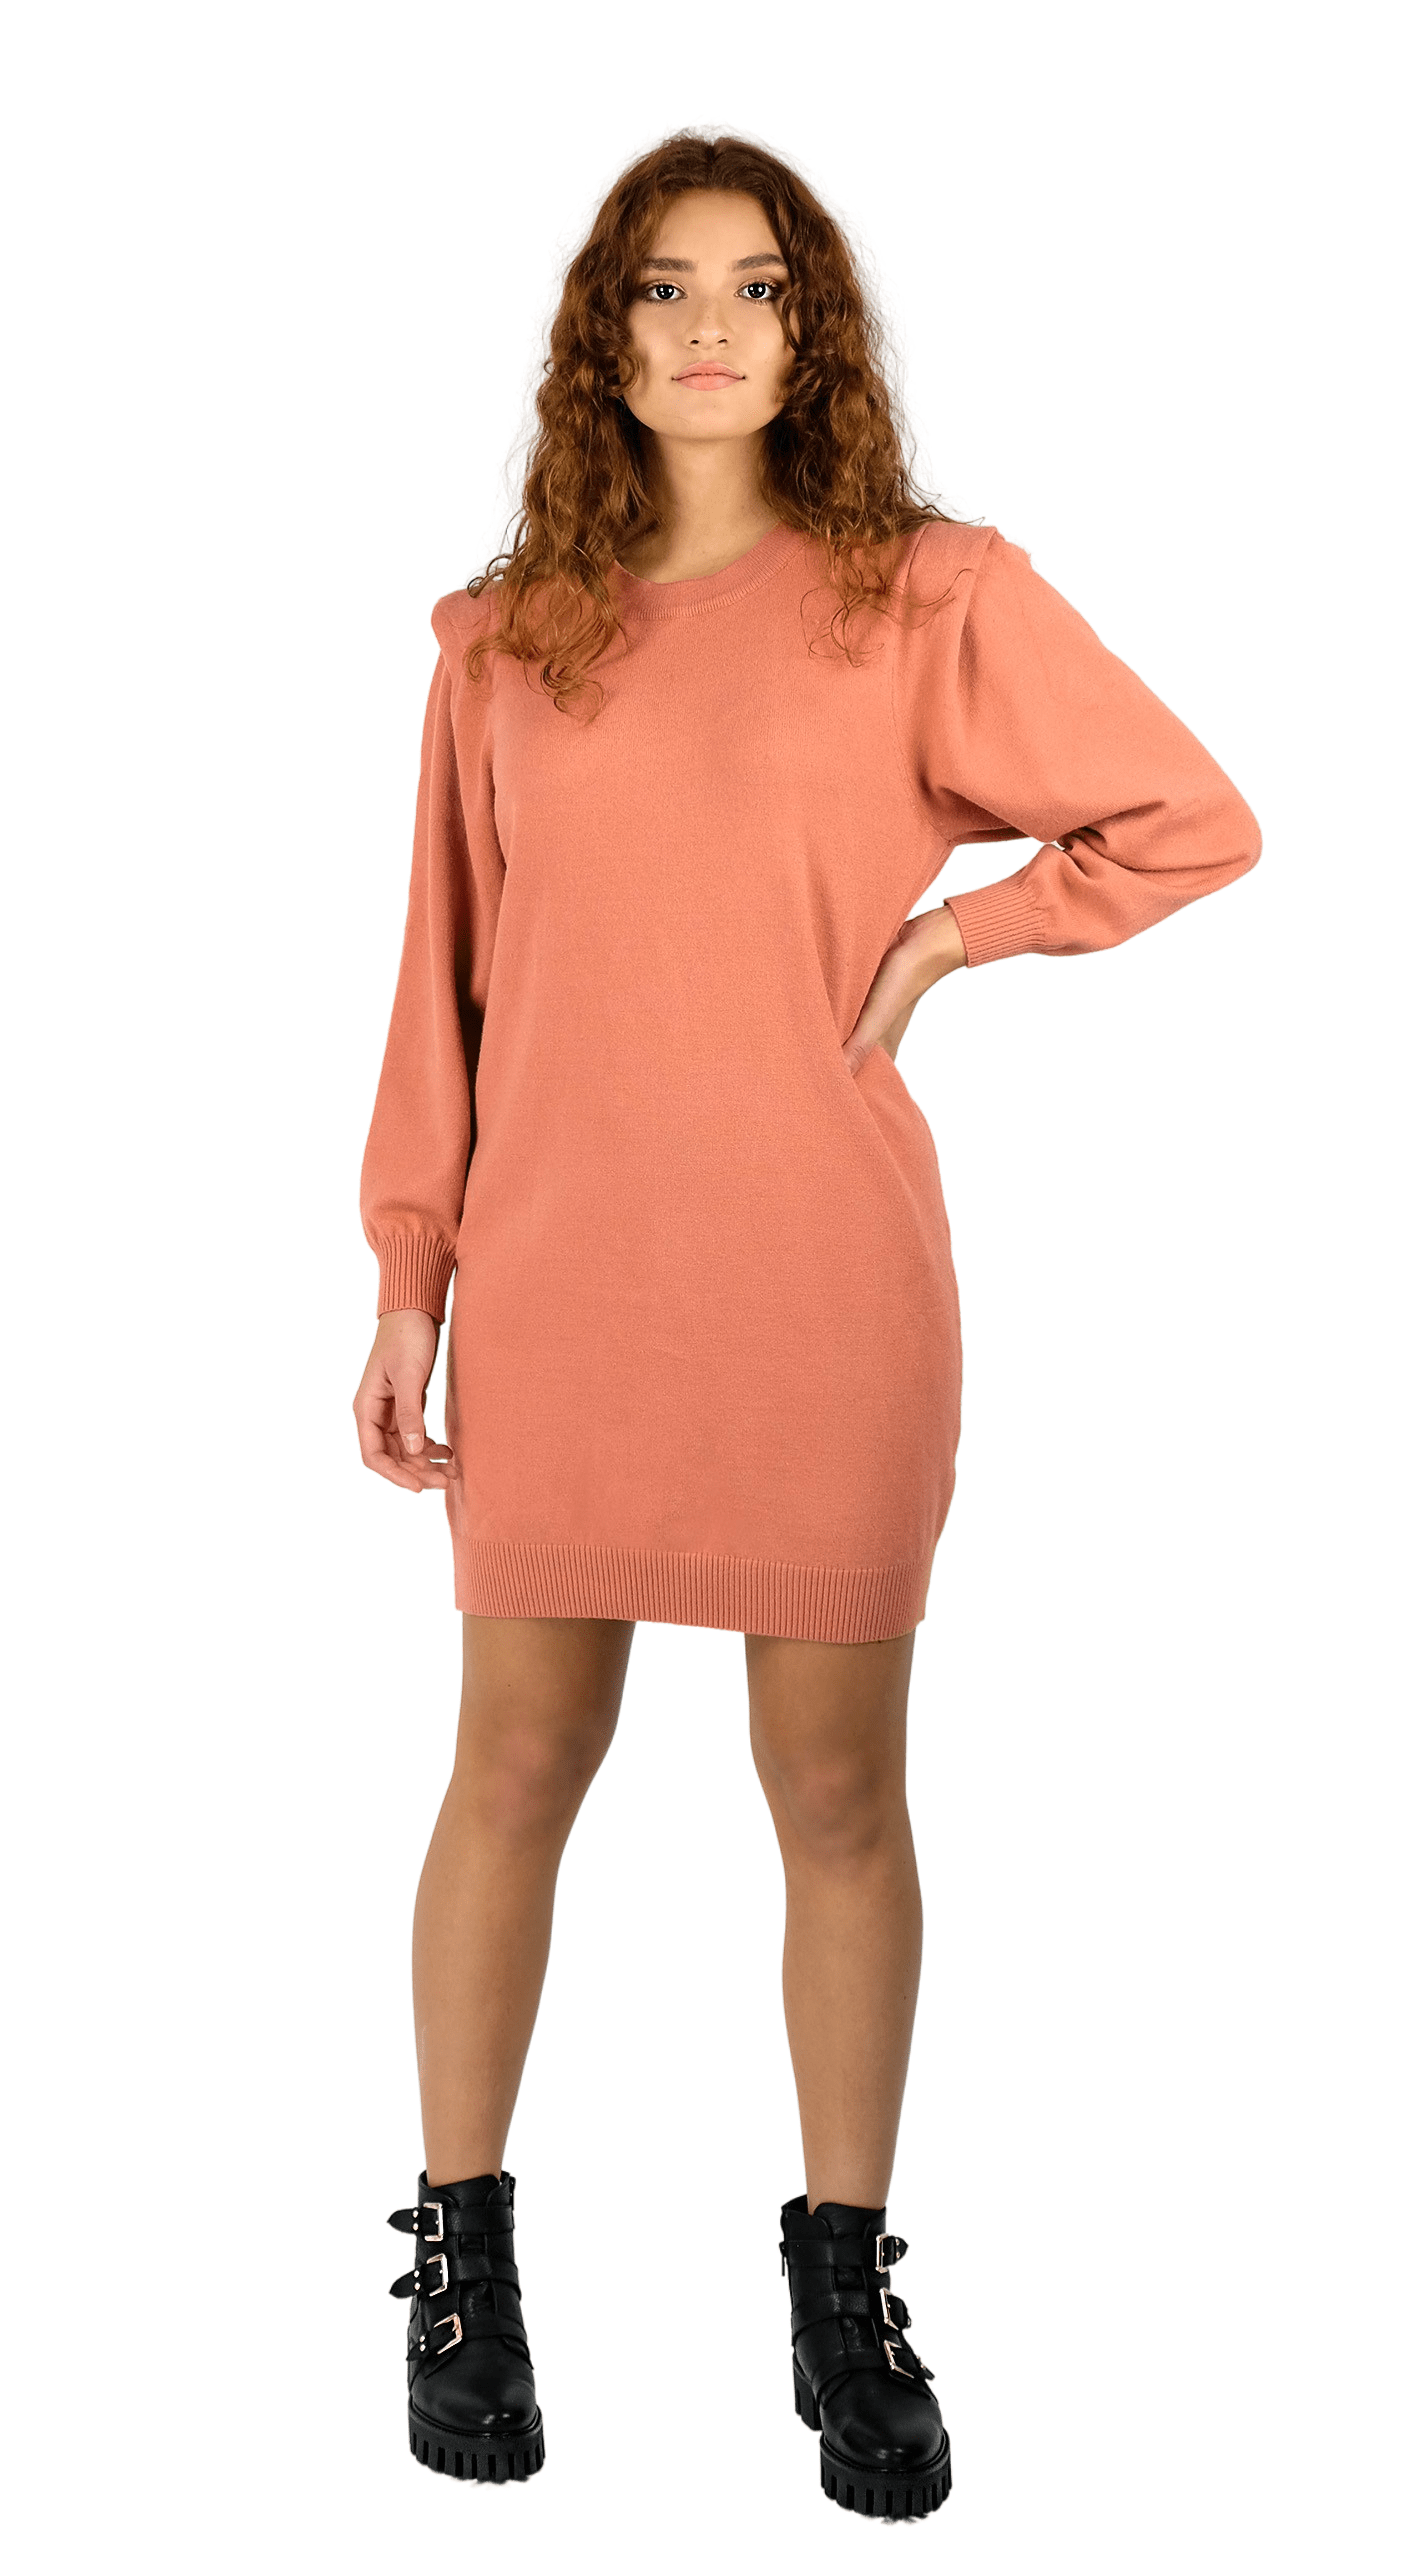 Fusion Knit Dress Pink - Lea